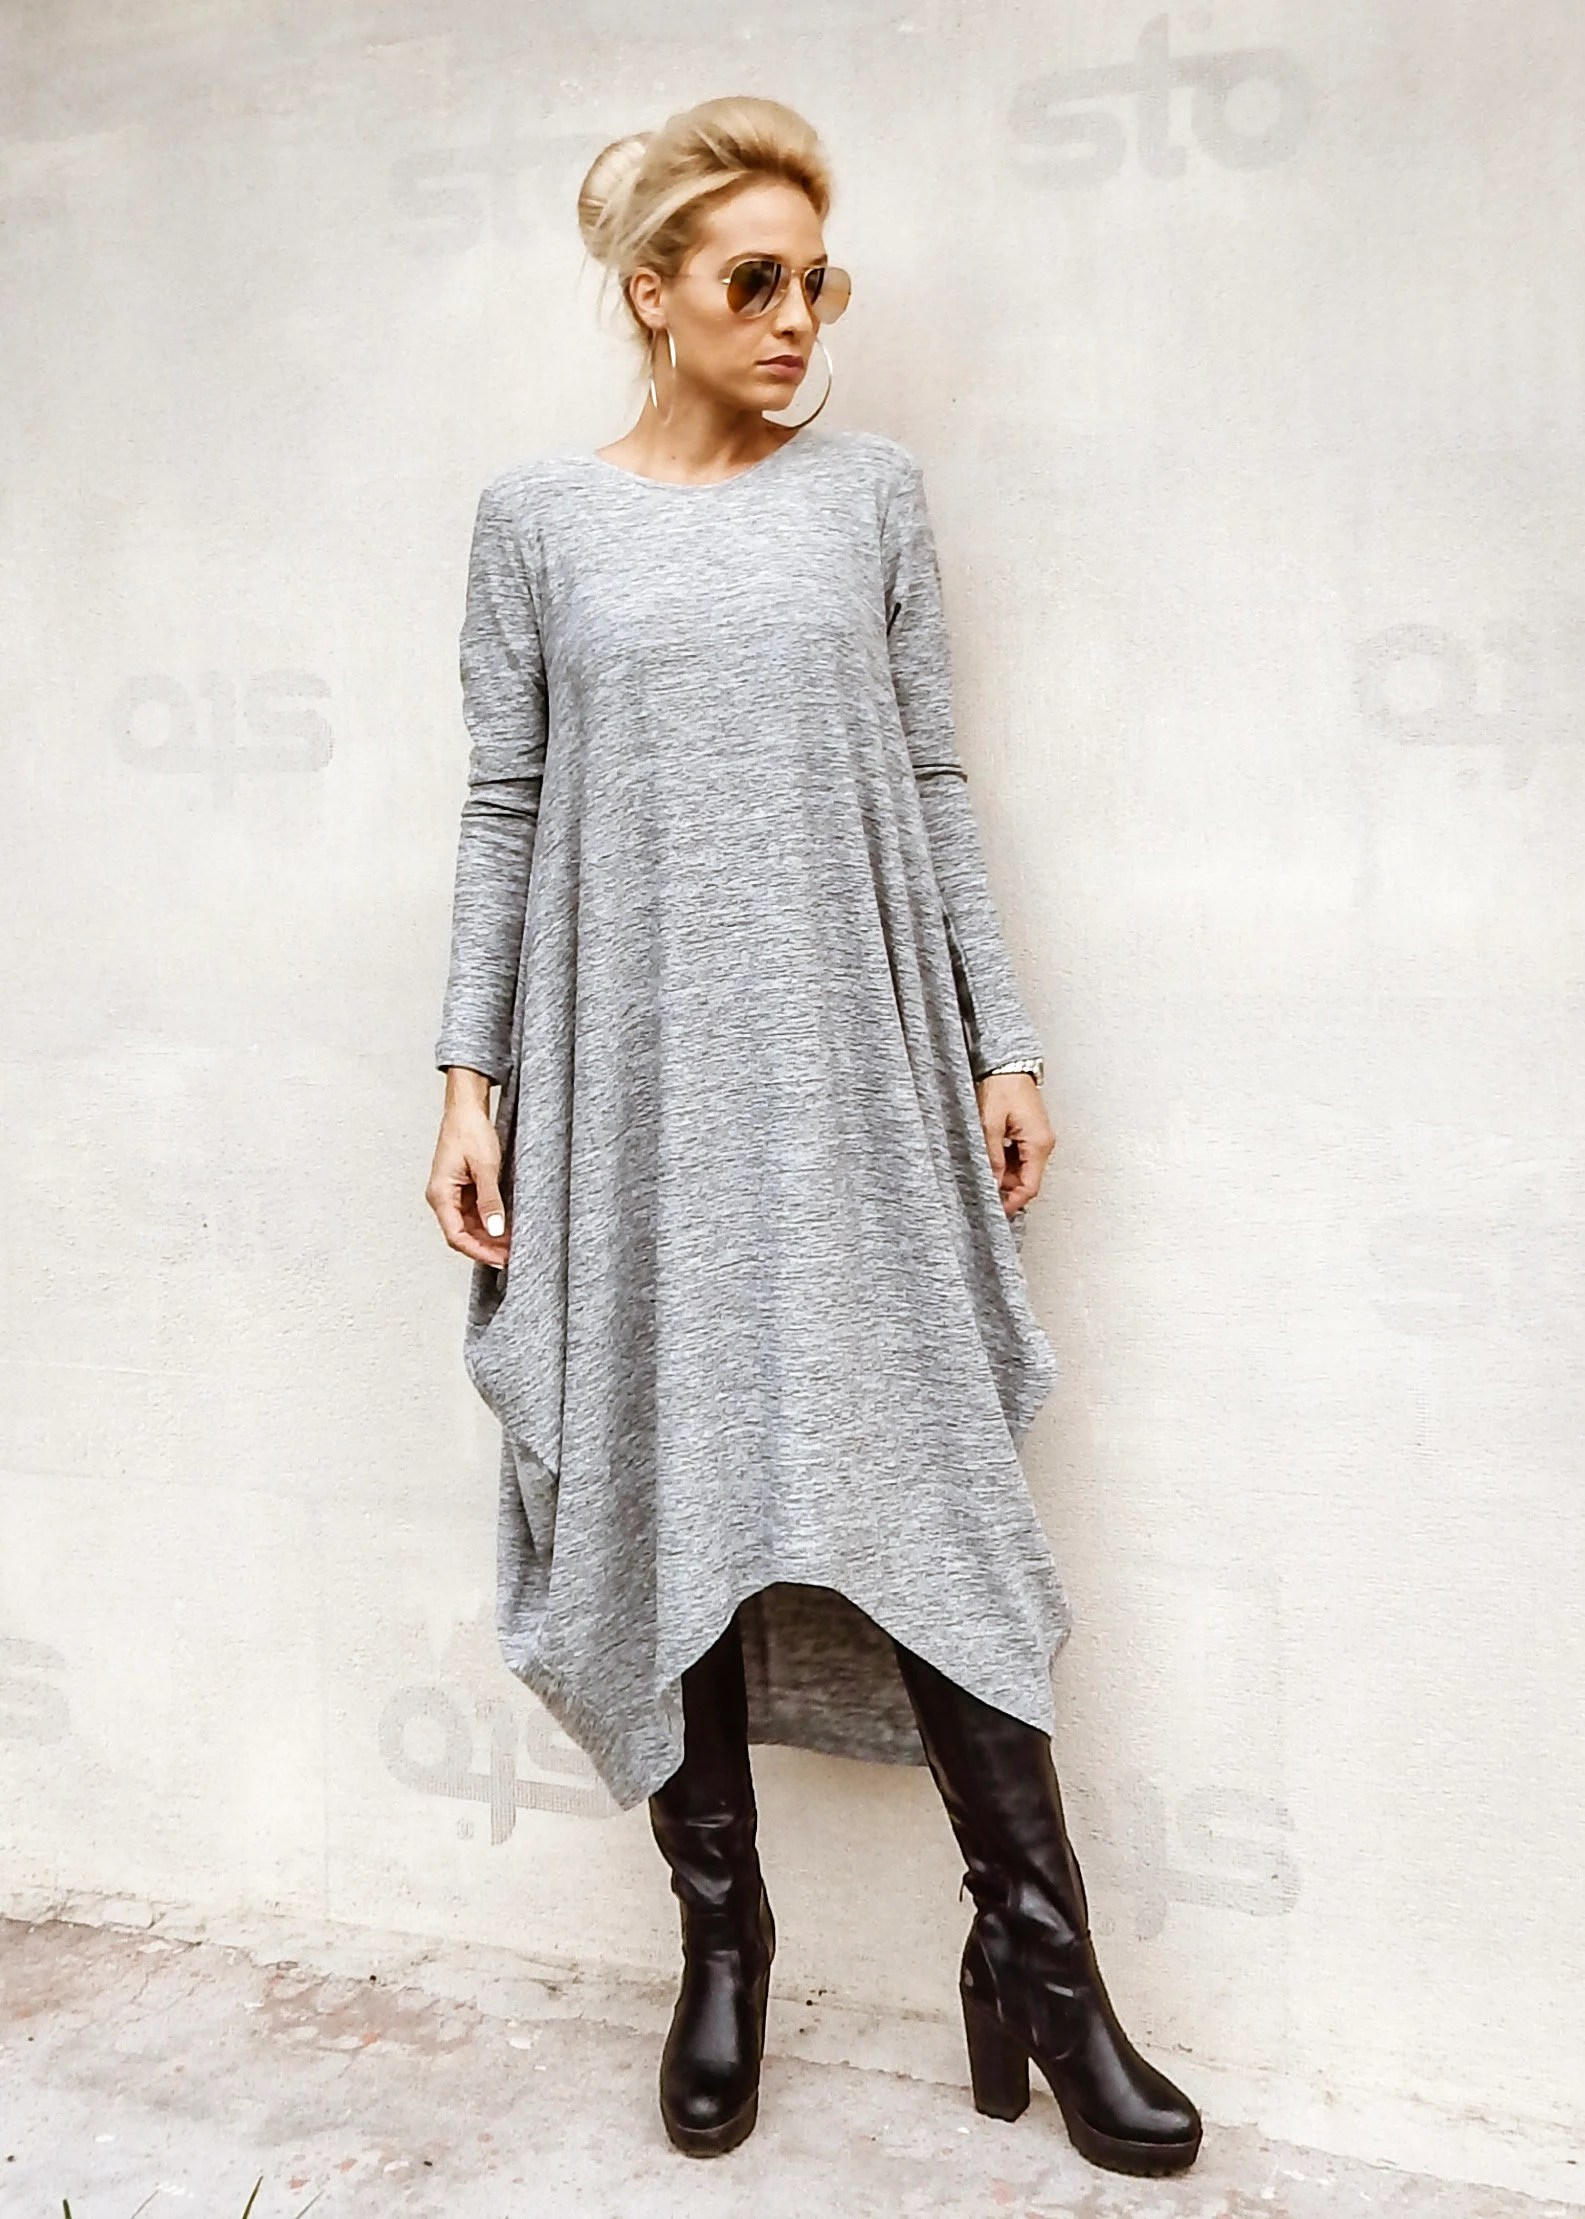 Robe Pull Femme Nouvelle Robe Pull Femme Hiver Robe Robe En Tricot Plus Size Robe Asymétrique Robe Robe Grande Taille Maxi Gris Robe 35286